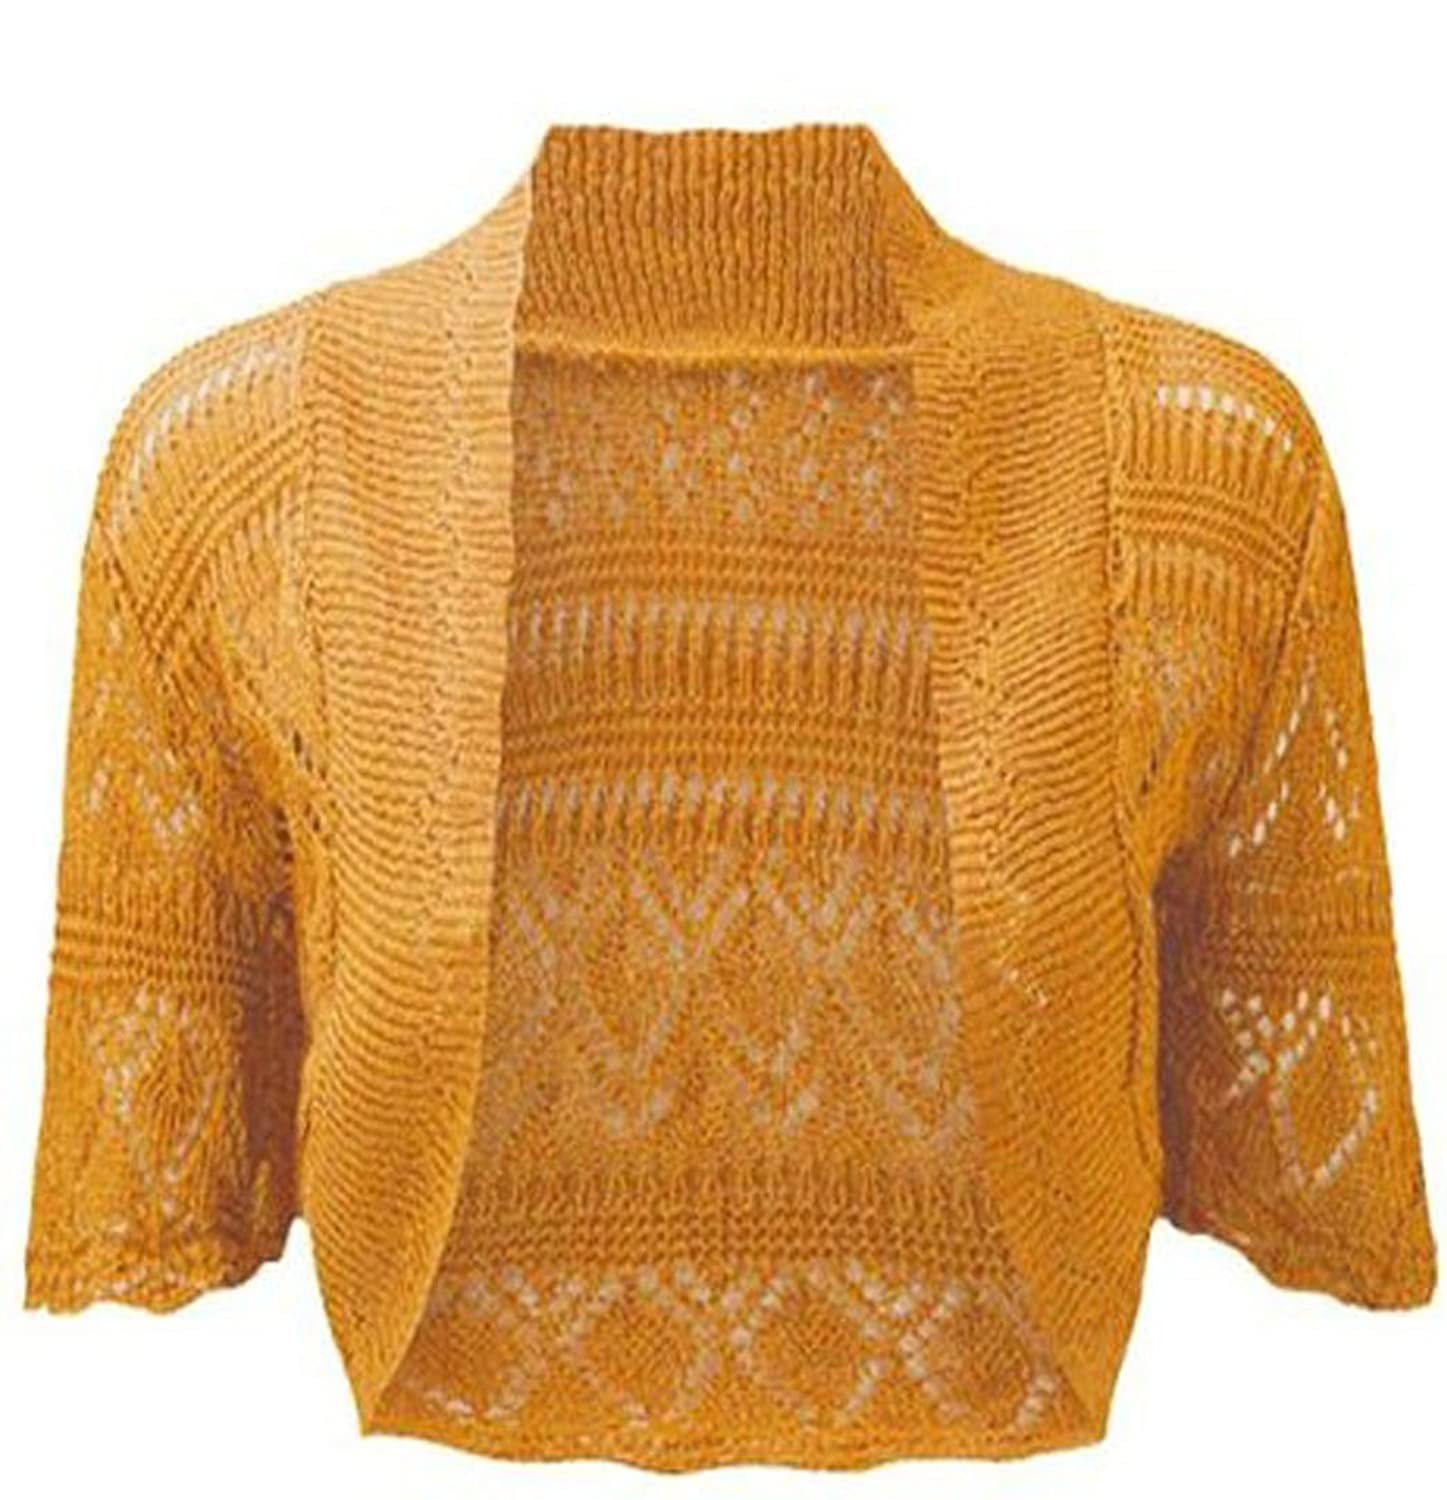 Womens Knitted Bolero Shrug Short Sleeve Crochet Shrug (M, Mustard ...